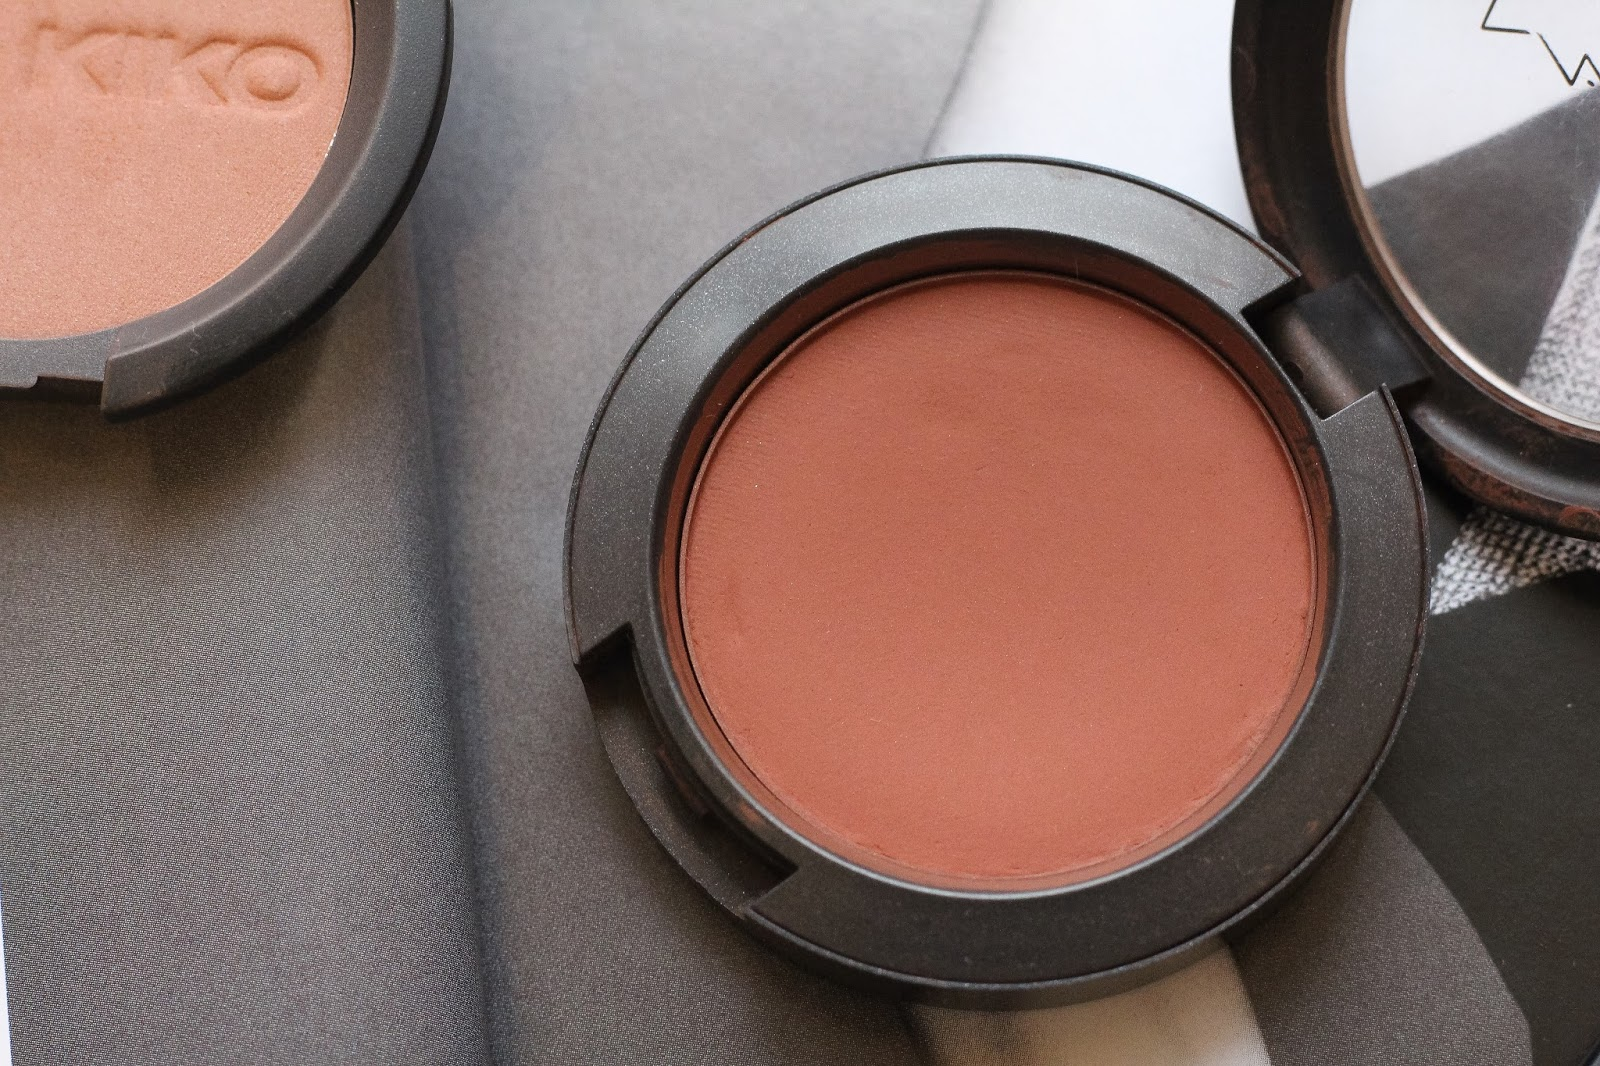 Blush for Women of colour, Blush for dark skin, Blush, Nars blush, Sleek by 3 blush, MAC Raizin